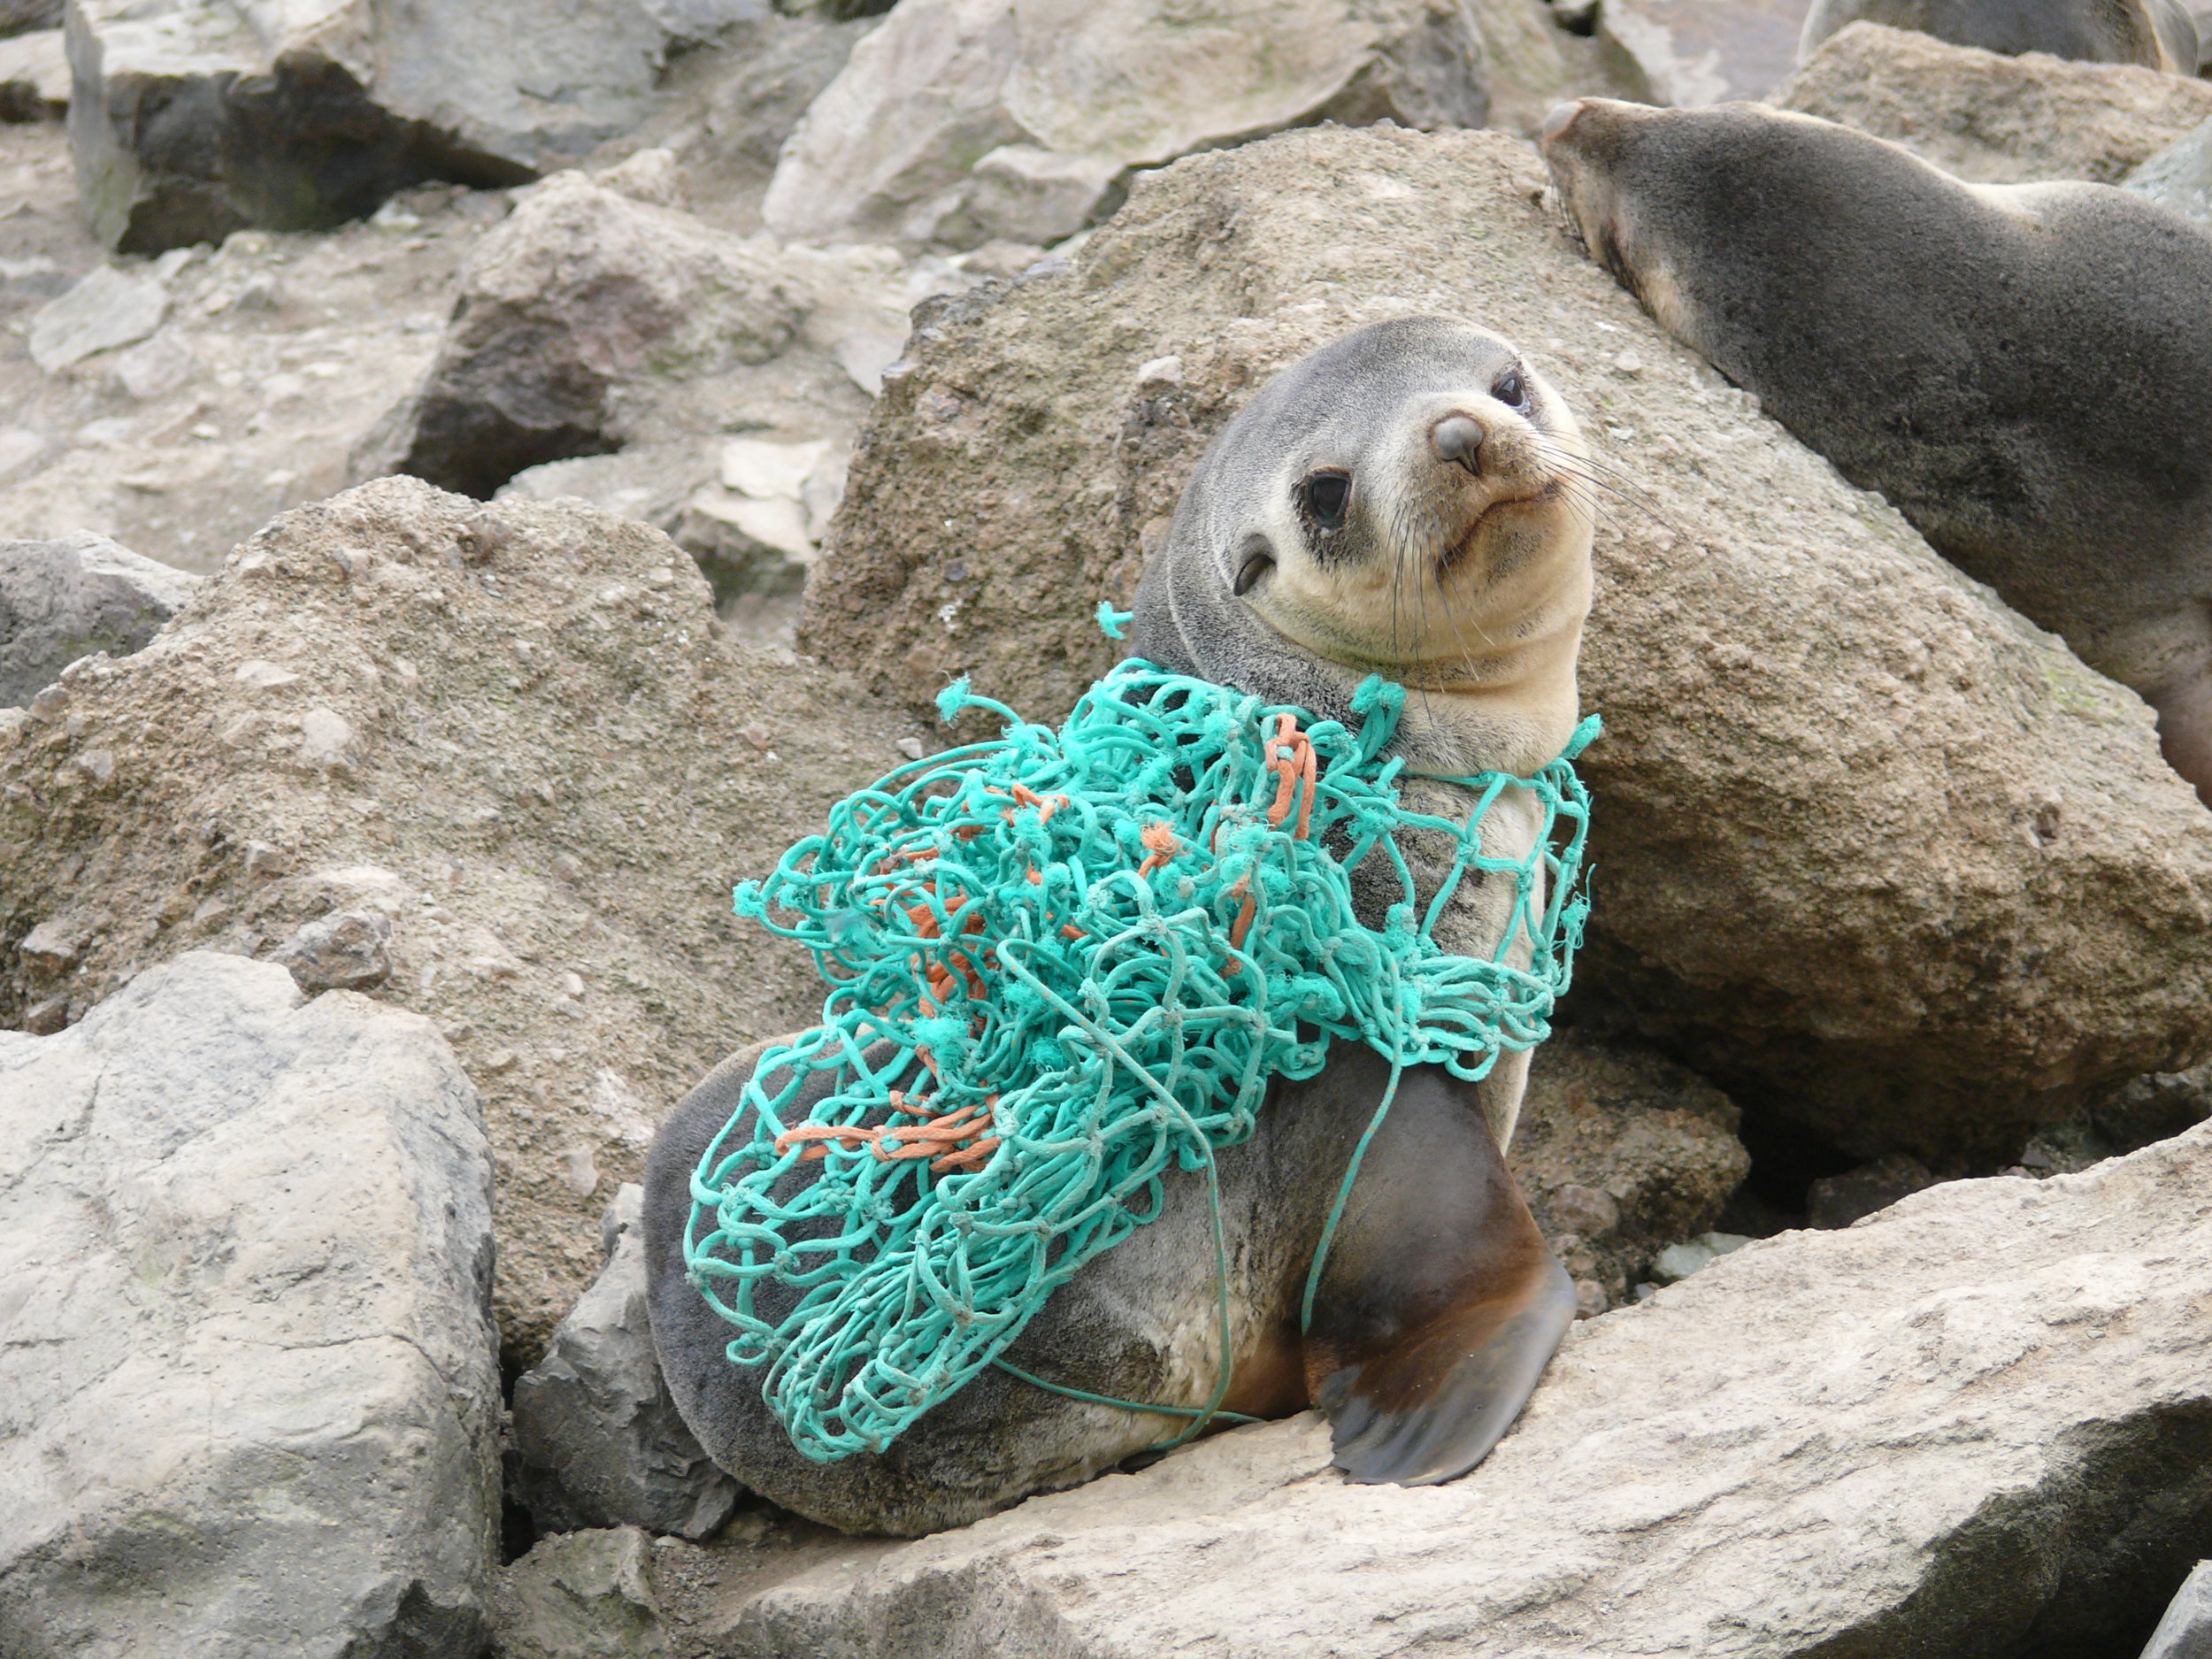 A young Antarctic fur seal entangled in fishing net at remote Bouvetoya in the Southern Ocean. Photo: Nico de Bruyn